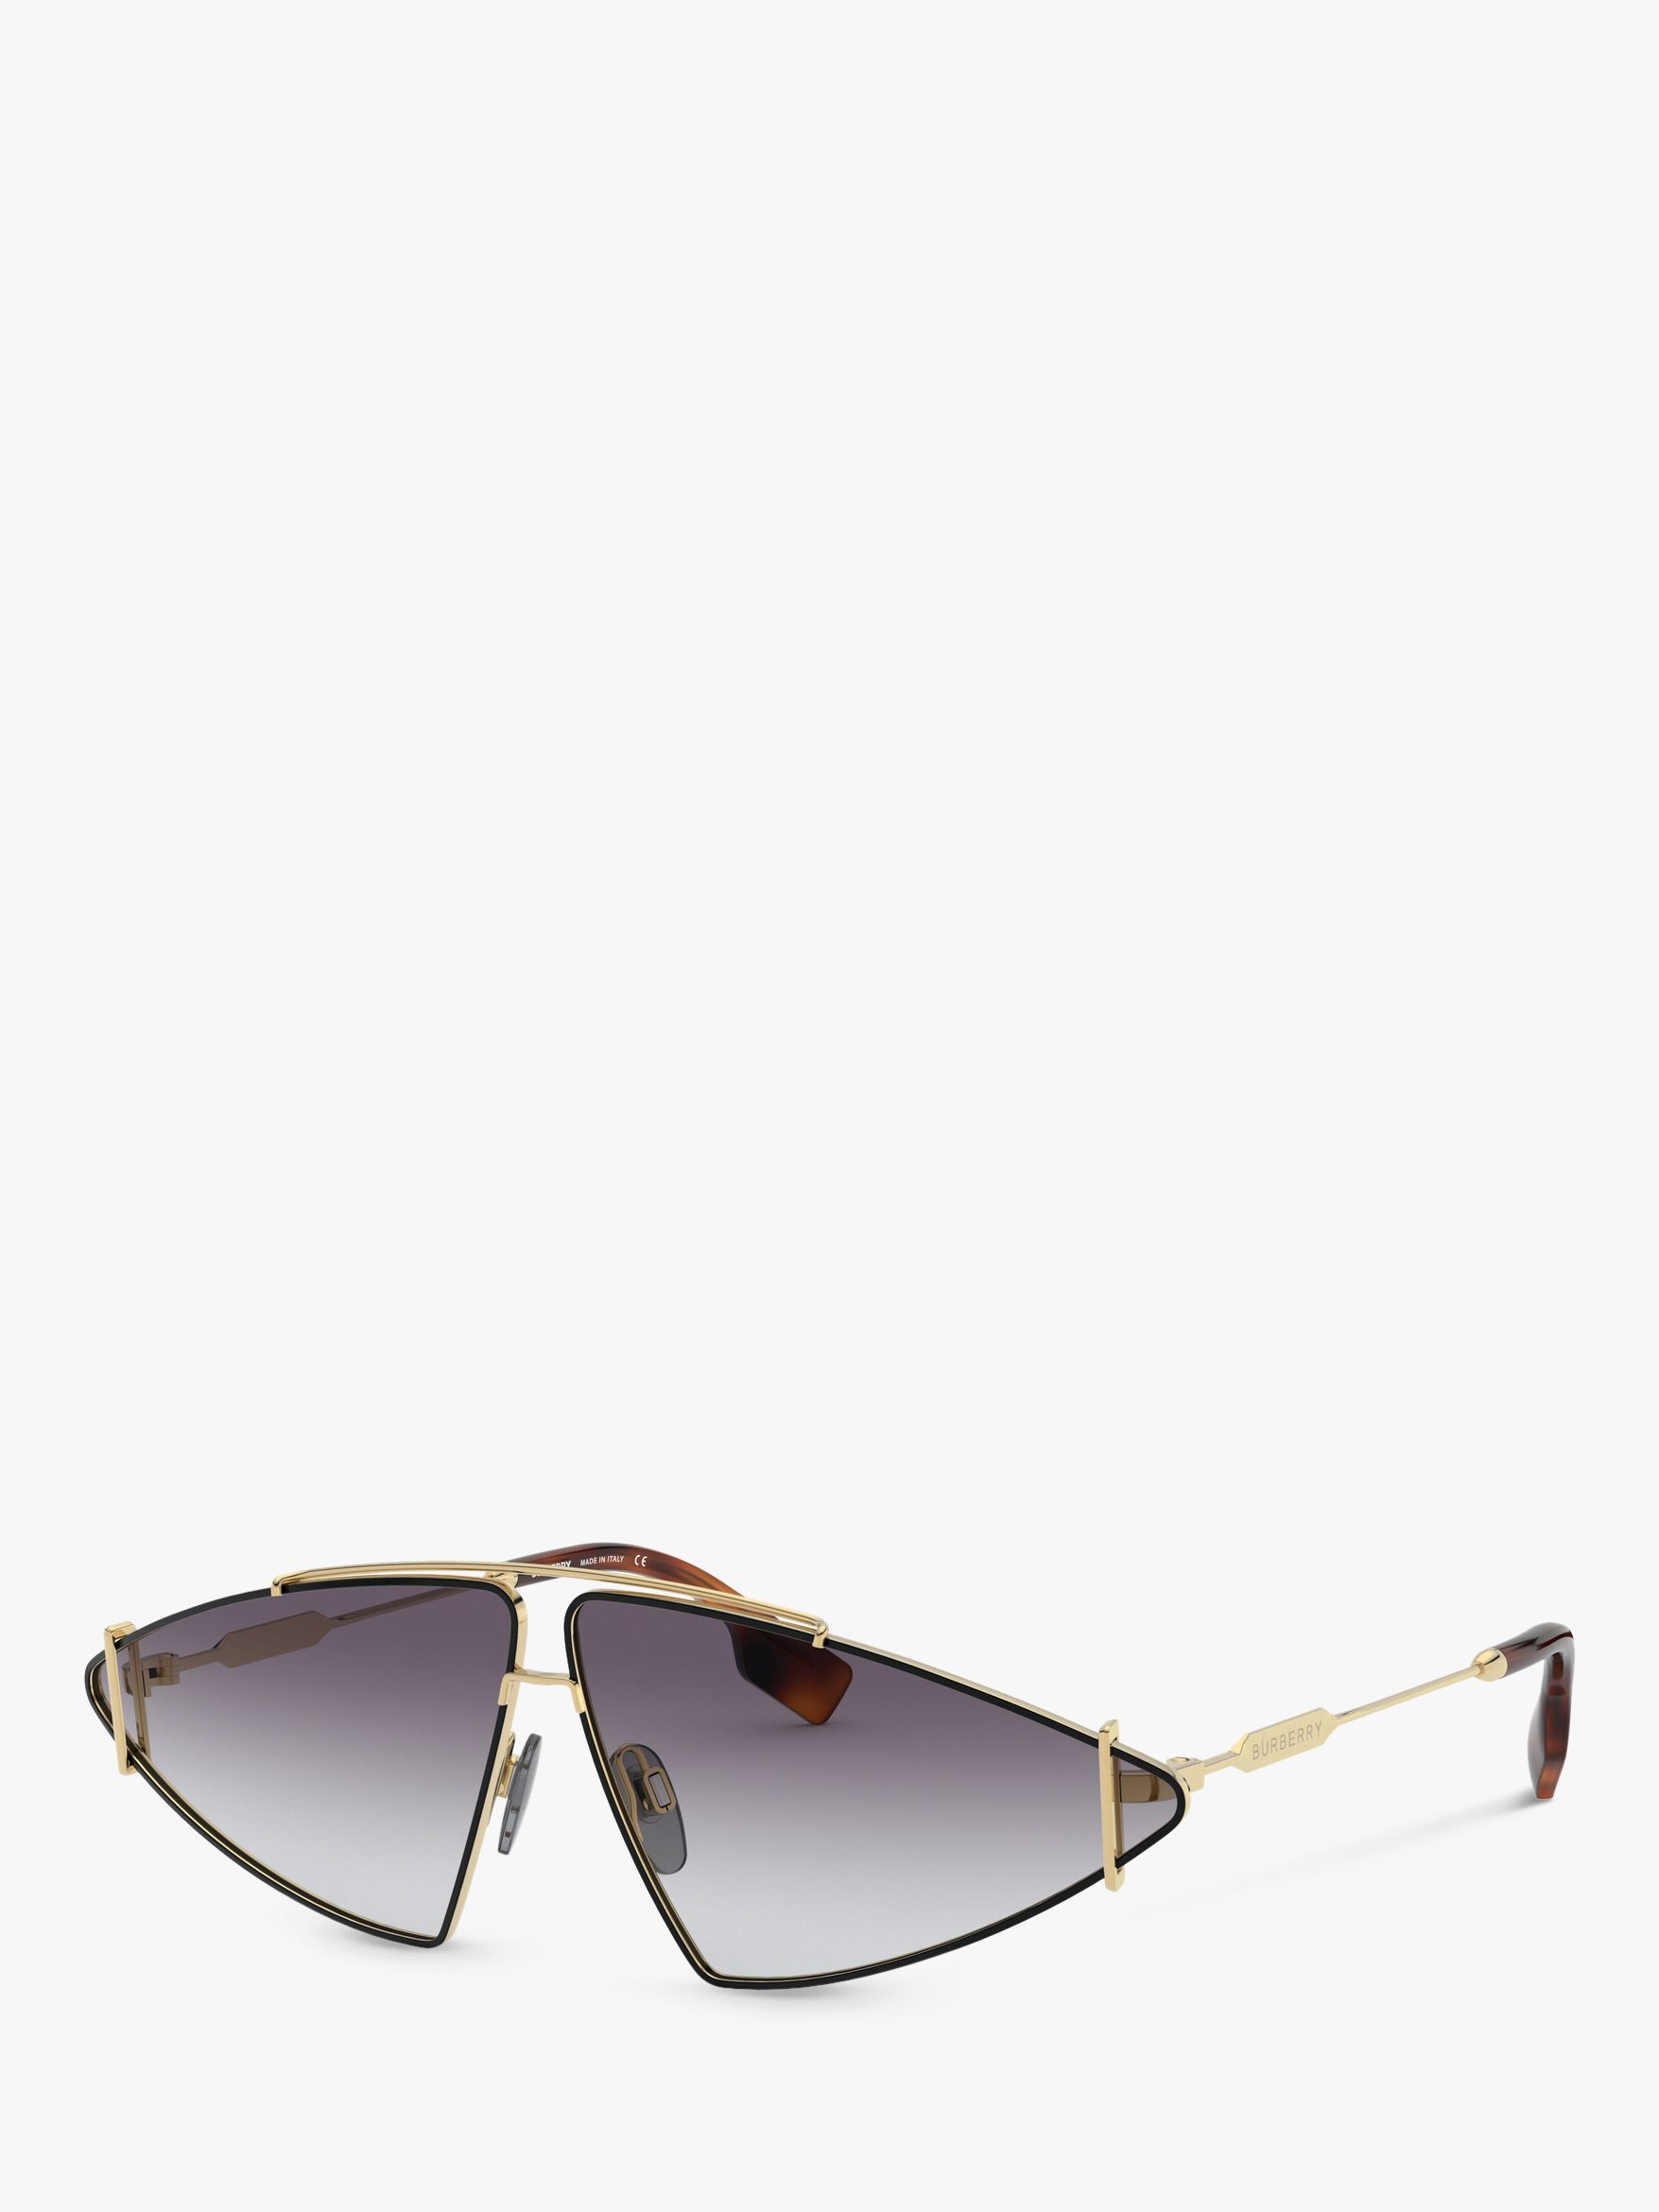 Burberry Burberry BE3111 Women's Triangular Sunglasses, Gold/Grey Gradient